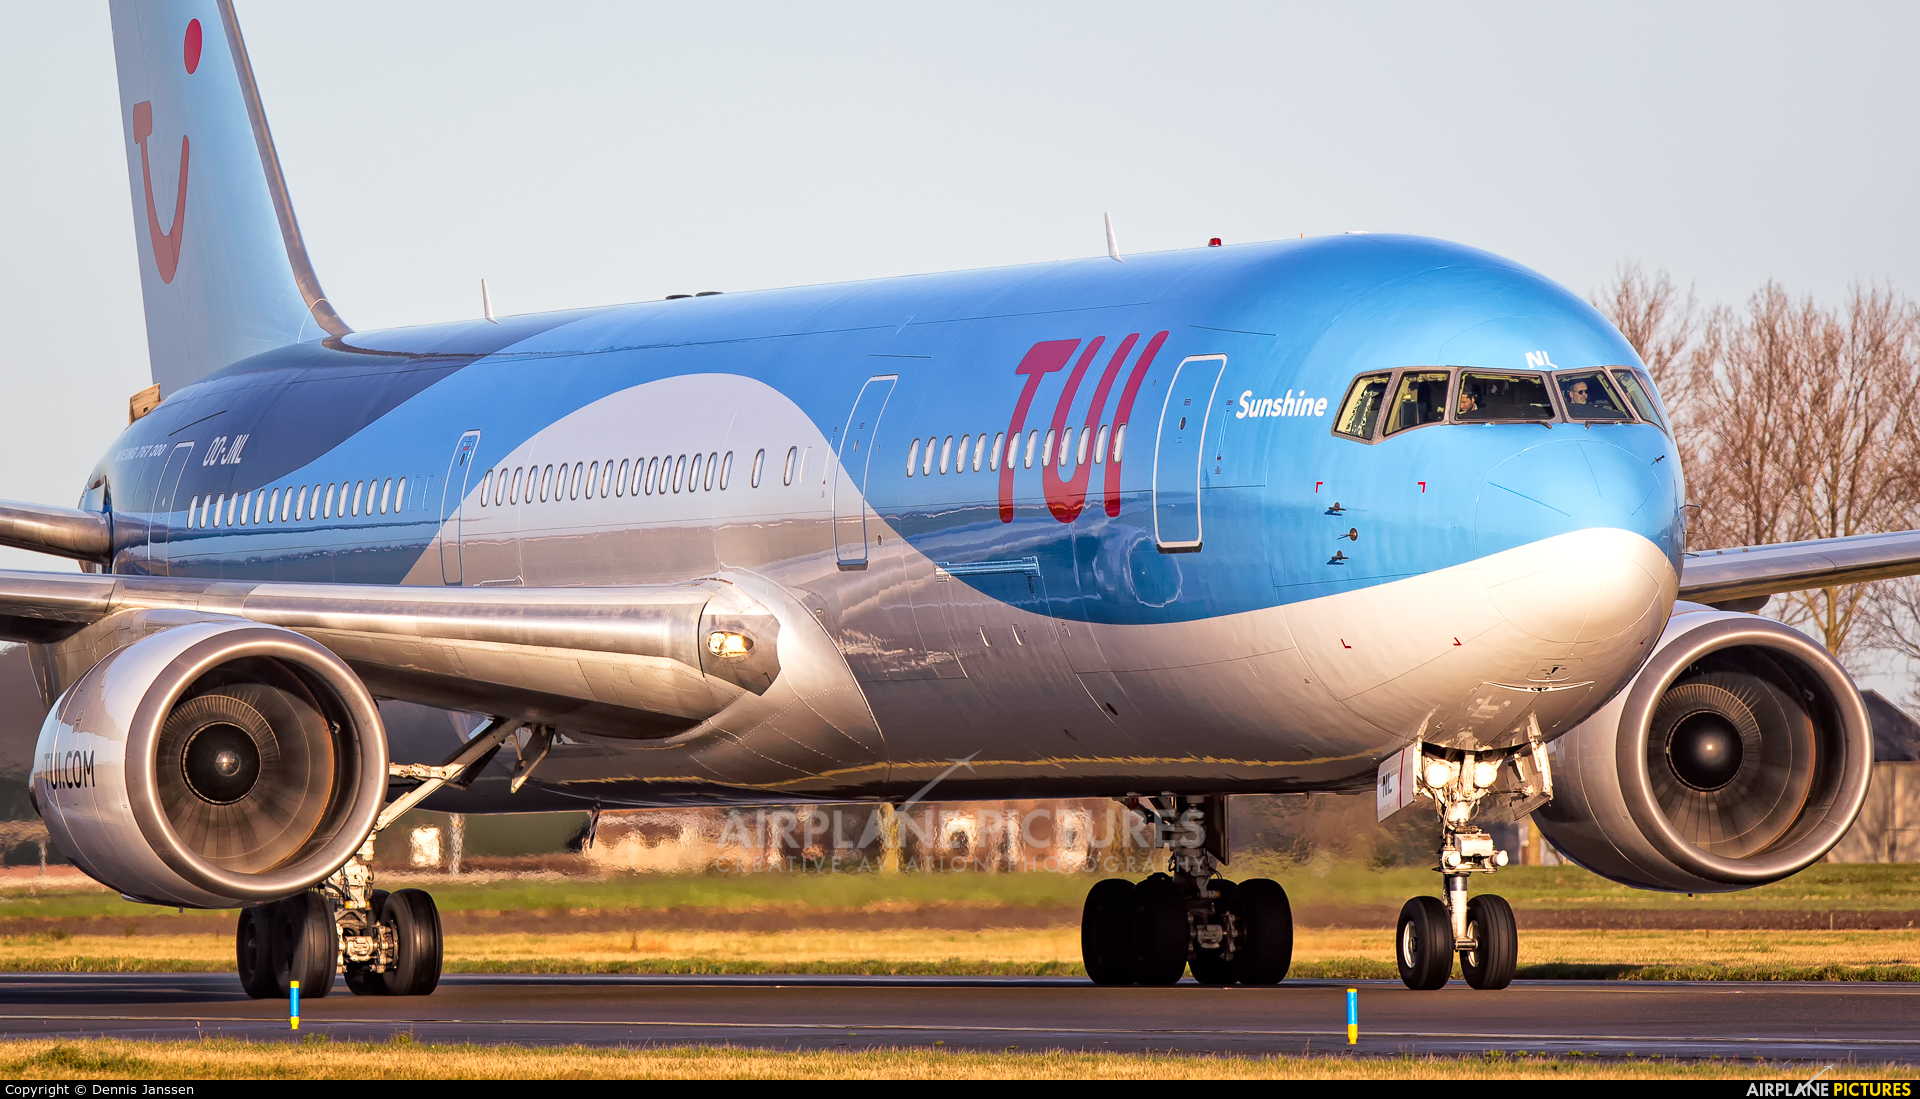 Jetairfly (TUI Airlines Belgium) OO-JNL aircraft at Amsterdam - Schiphol